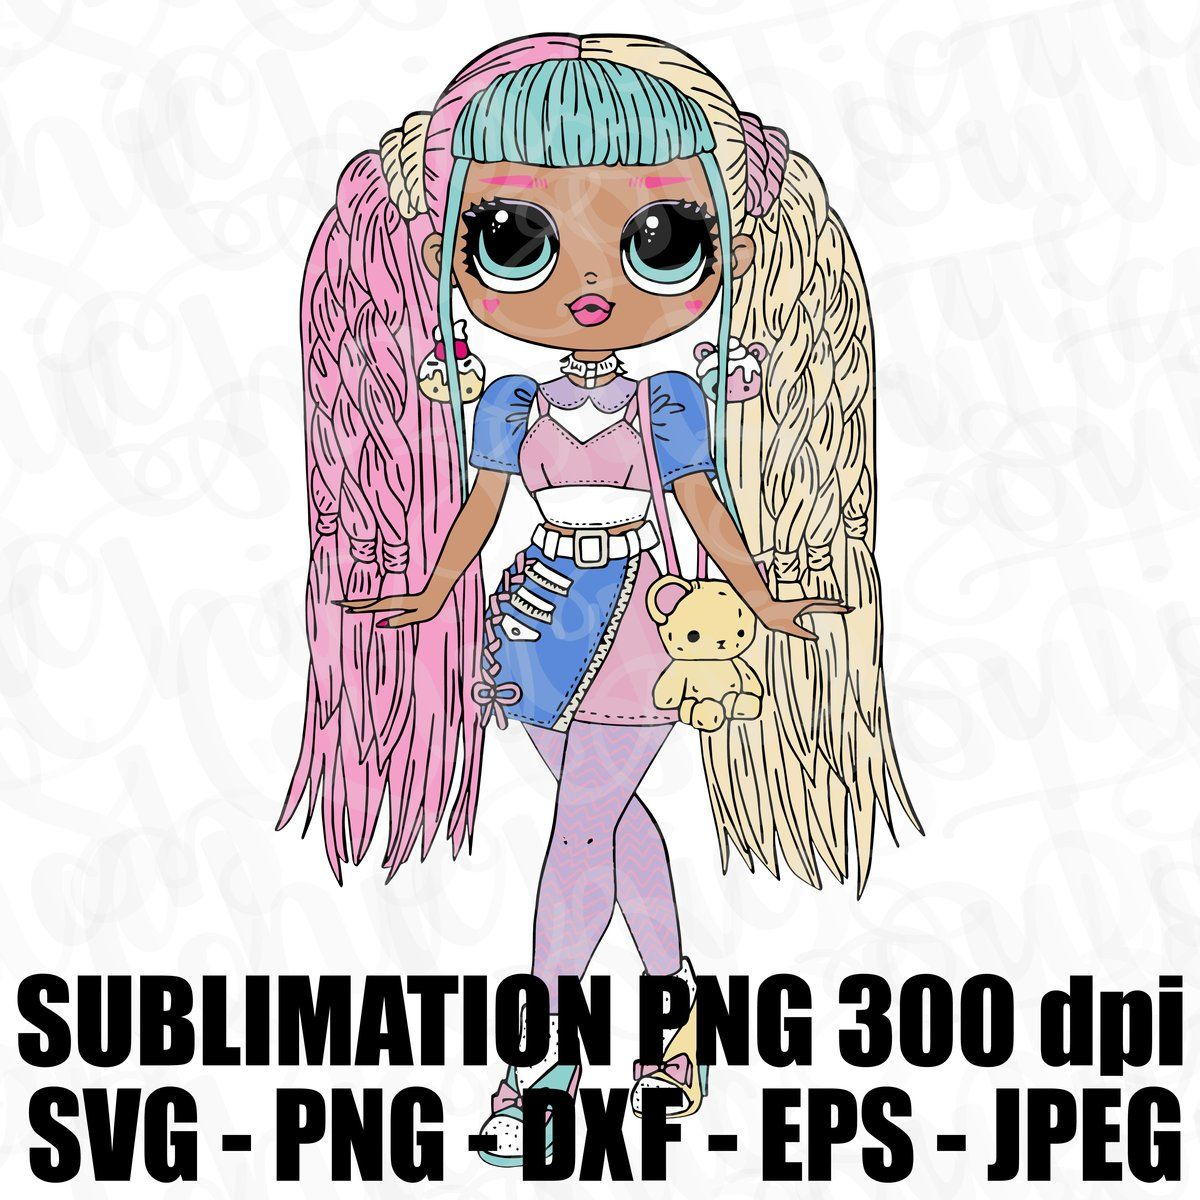 Instant Digital Download For Svg Of Previewed Image Unless Ebay Purchases In That Case The File Will Be Emaile Lol Dolls Barbie Coloring Pages Swag Cartoon